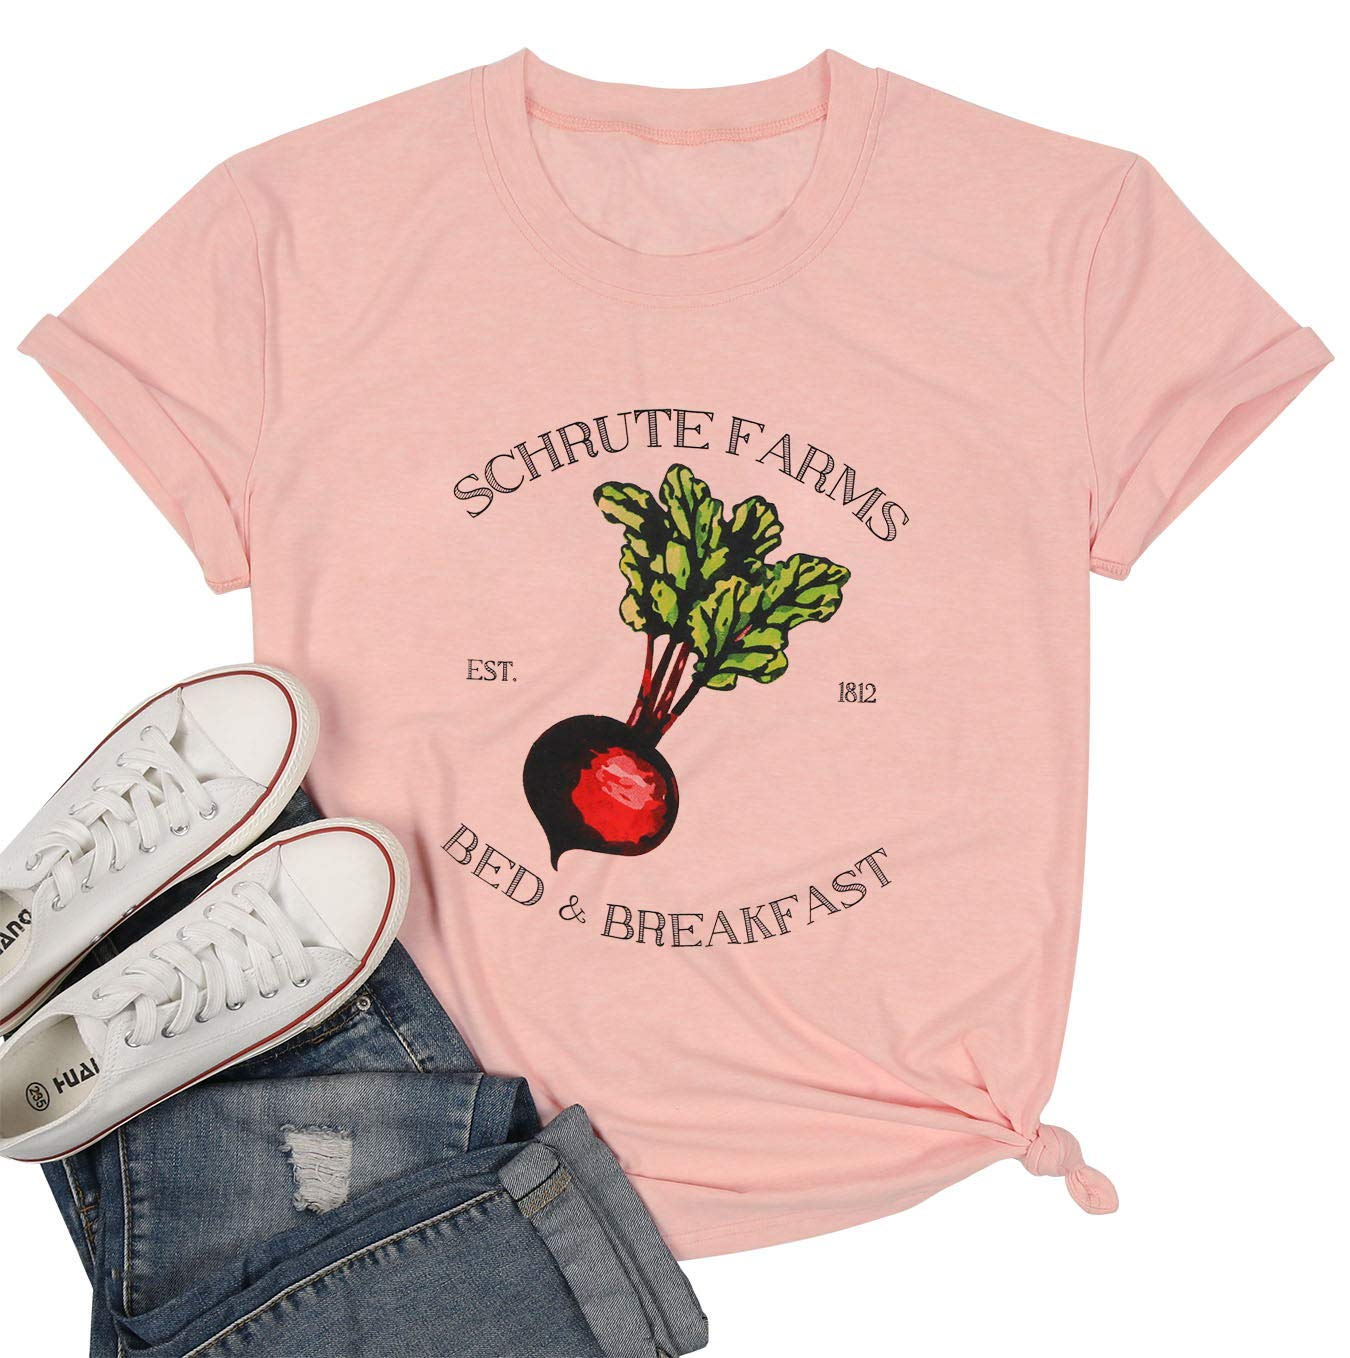 NANYUAYA Women Schrute Farms Beets Printed Funny T Shirt Cute Graphic Casual Short Sleeve Tees Blouse